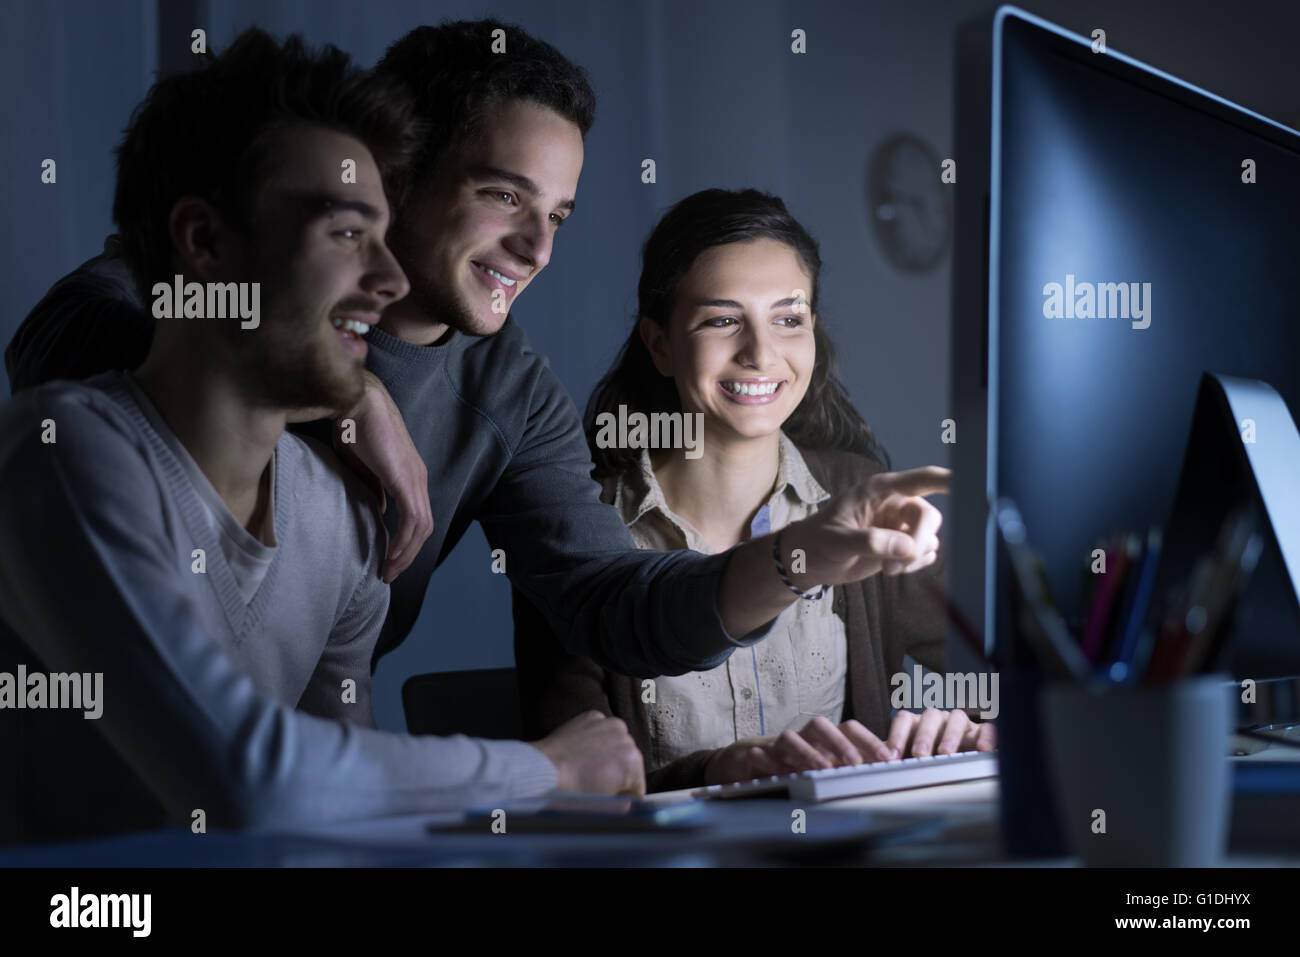 Smiling students connecting to internet with a computer, they are networking and browsing websites, one man is pointing - Stock Image